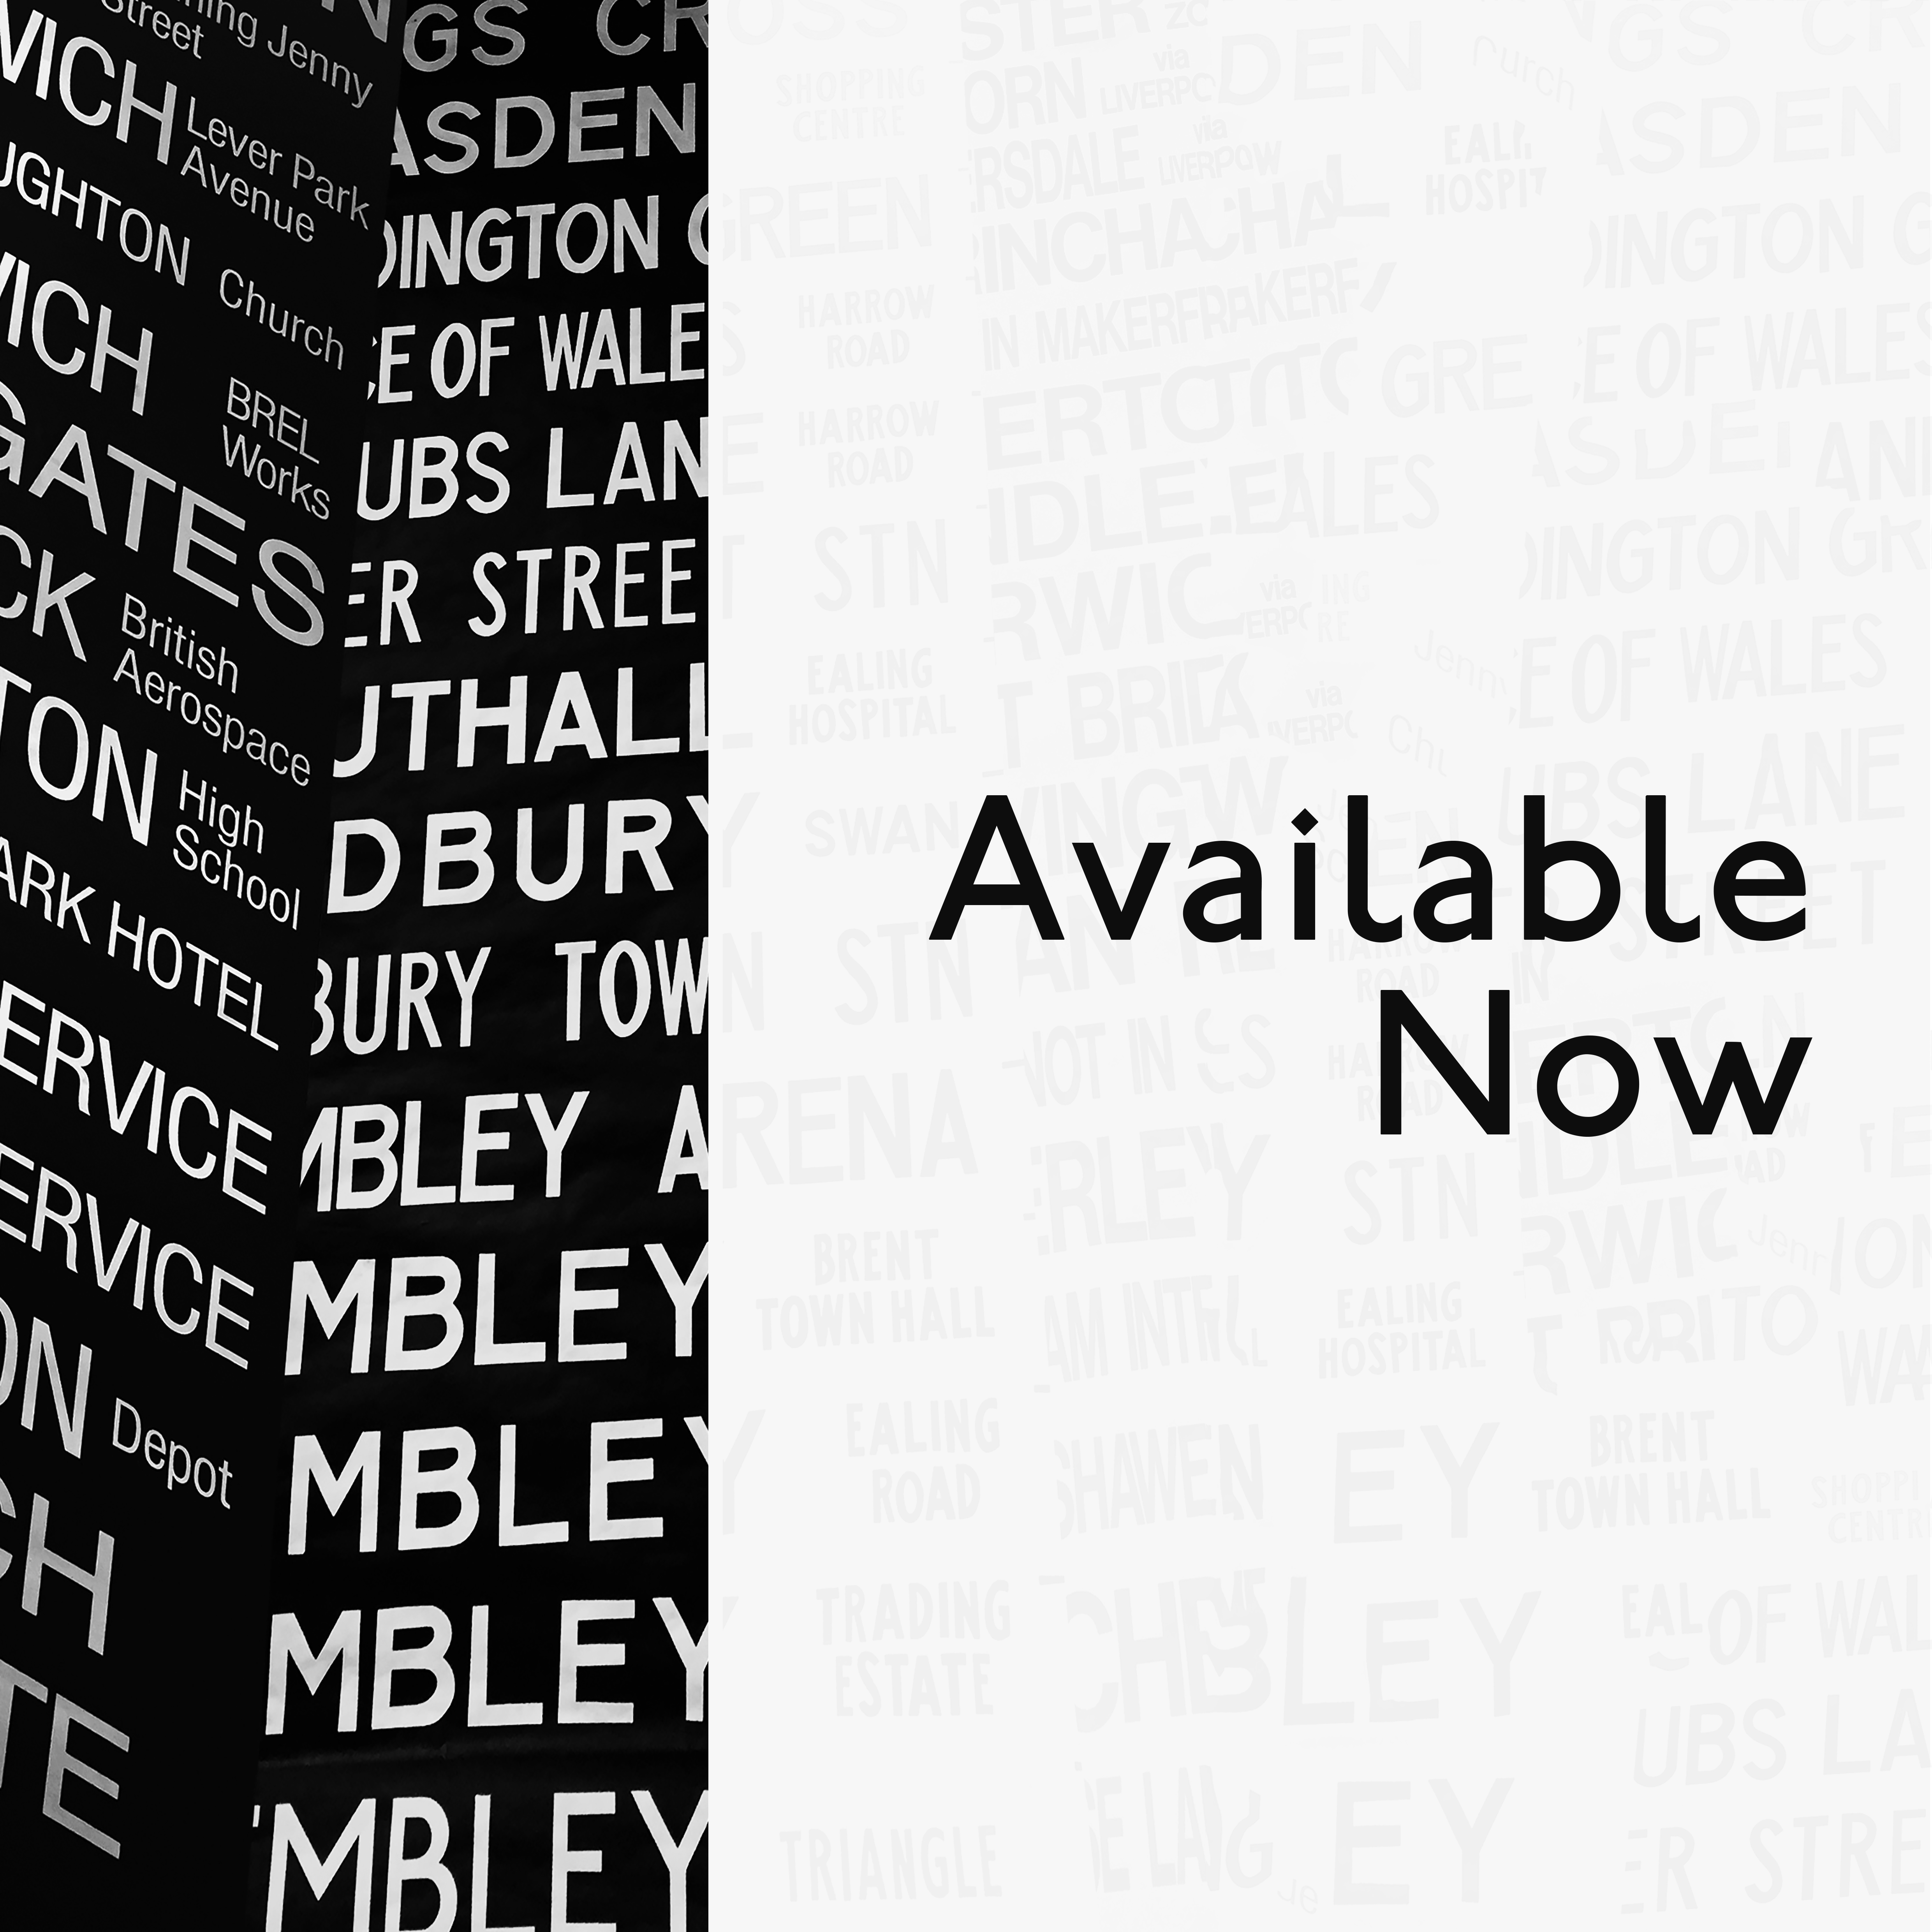 available now!